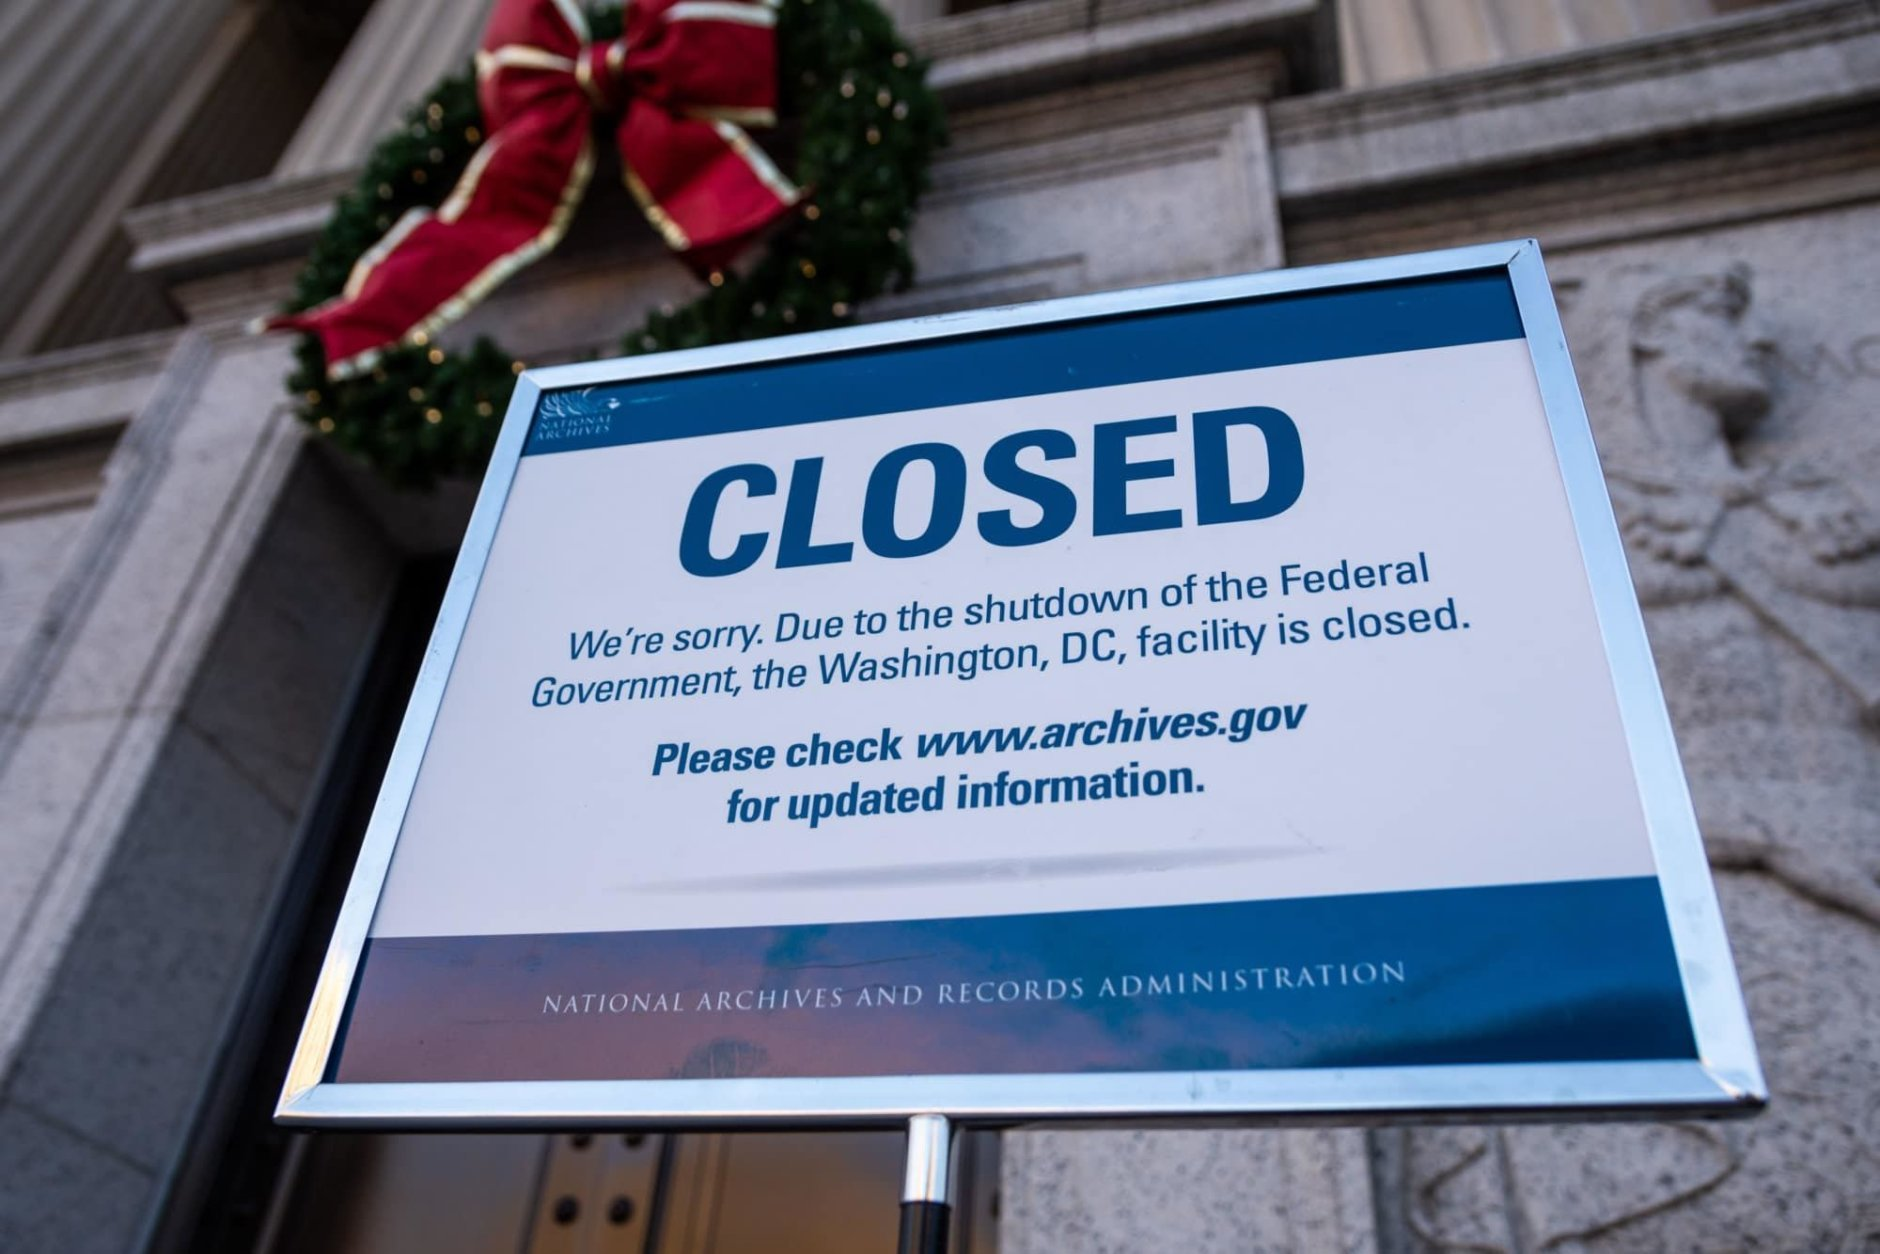 """<p><strong>The federal government shutdown</strong></p> <p>Speaking of national stories that also hit locally: Much of the <a href=""""https://wtop.com/media-galleries/2019/01/photos-longest-government-shutdown-in-us-history/"""" target=""""_blank"""" rel=""""noopener"""">federal government shut down</a> on Dec. 22, 2018, leaving about 800,000 federal workers either temporarily out of work or working without pay until funding for the operations of the government was restored Jan. 25, 2019.</p> <p>The standoff was over President Donald Trump's demand for $5.7 billion in federal funding for a border wall with Mexico. Trump had long promised such a wall in his campaign, though he had always said Mexico, not American taxpayers, would pay for it.</p> <p>Most federal workers, including tens of thousands in the D.C. area, missed two paychecks as a result of the 35-day shutdown, the longest in American history.</p> <p>It also caused a delay in the State of the Union address, as House Speaker Nancy Pelosi, who regained the speakership after the 2018 midterms, changed the date of her invitation to Trump.</p> <p>The <a href=""""https://wtop.com/government/2019/01/talks-start-as-senate-rejects-2-plans-for-ending-shutdown/"""" target=""""_blank"""" rel=""""noopener"""">bill to reopen the government</a> contained no new money for a wall; the funding only lasted until Feb. 15. At that point, Trump made good on a long-standing threat and declared the situation on the southern border a national emergency, giving himself the power to divert money that Congress had approved for various purposes and use it on a border wall instead.</p> <p>Since then, the issue has been tied up in courts.</p>"""